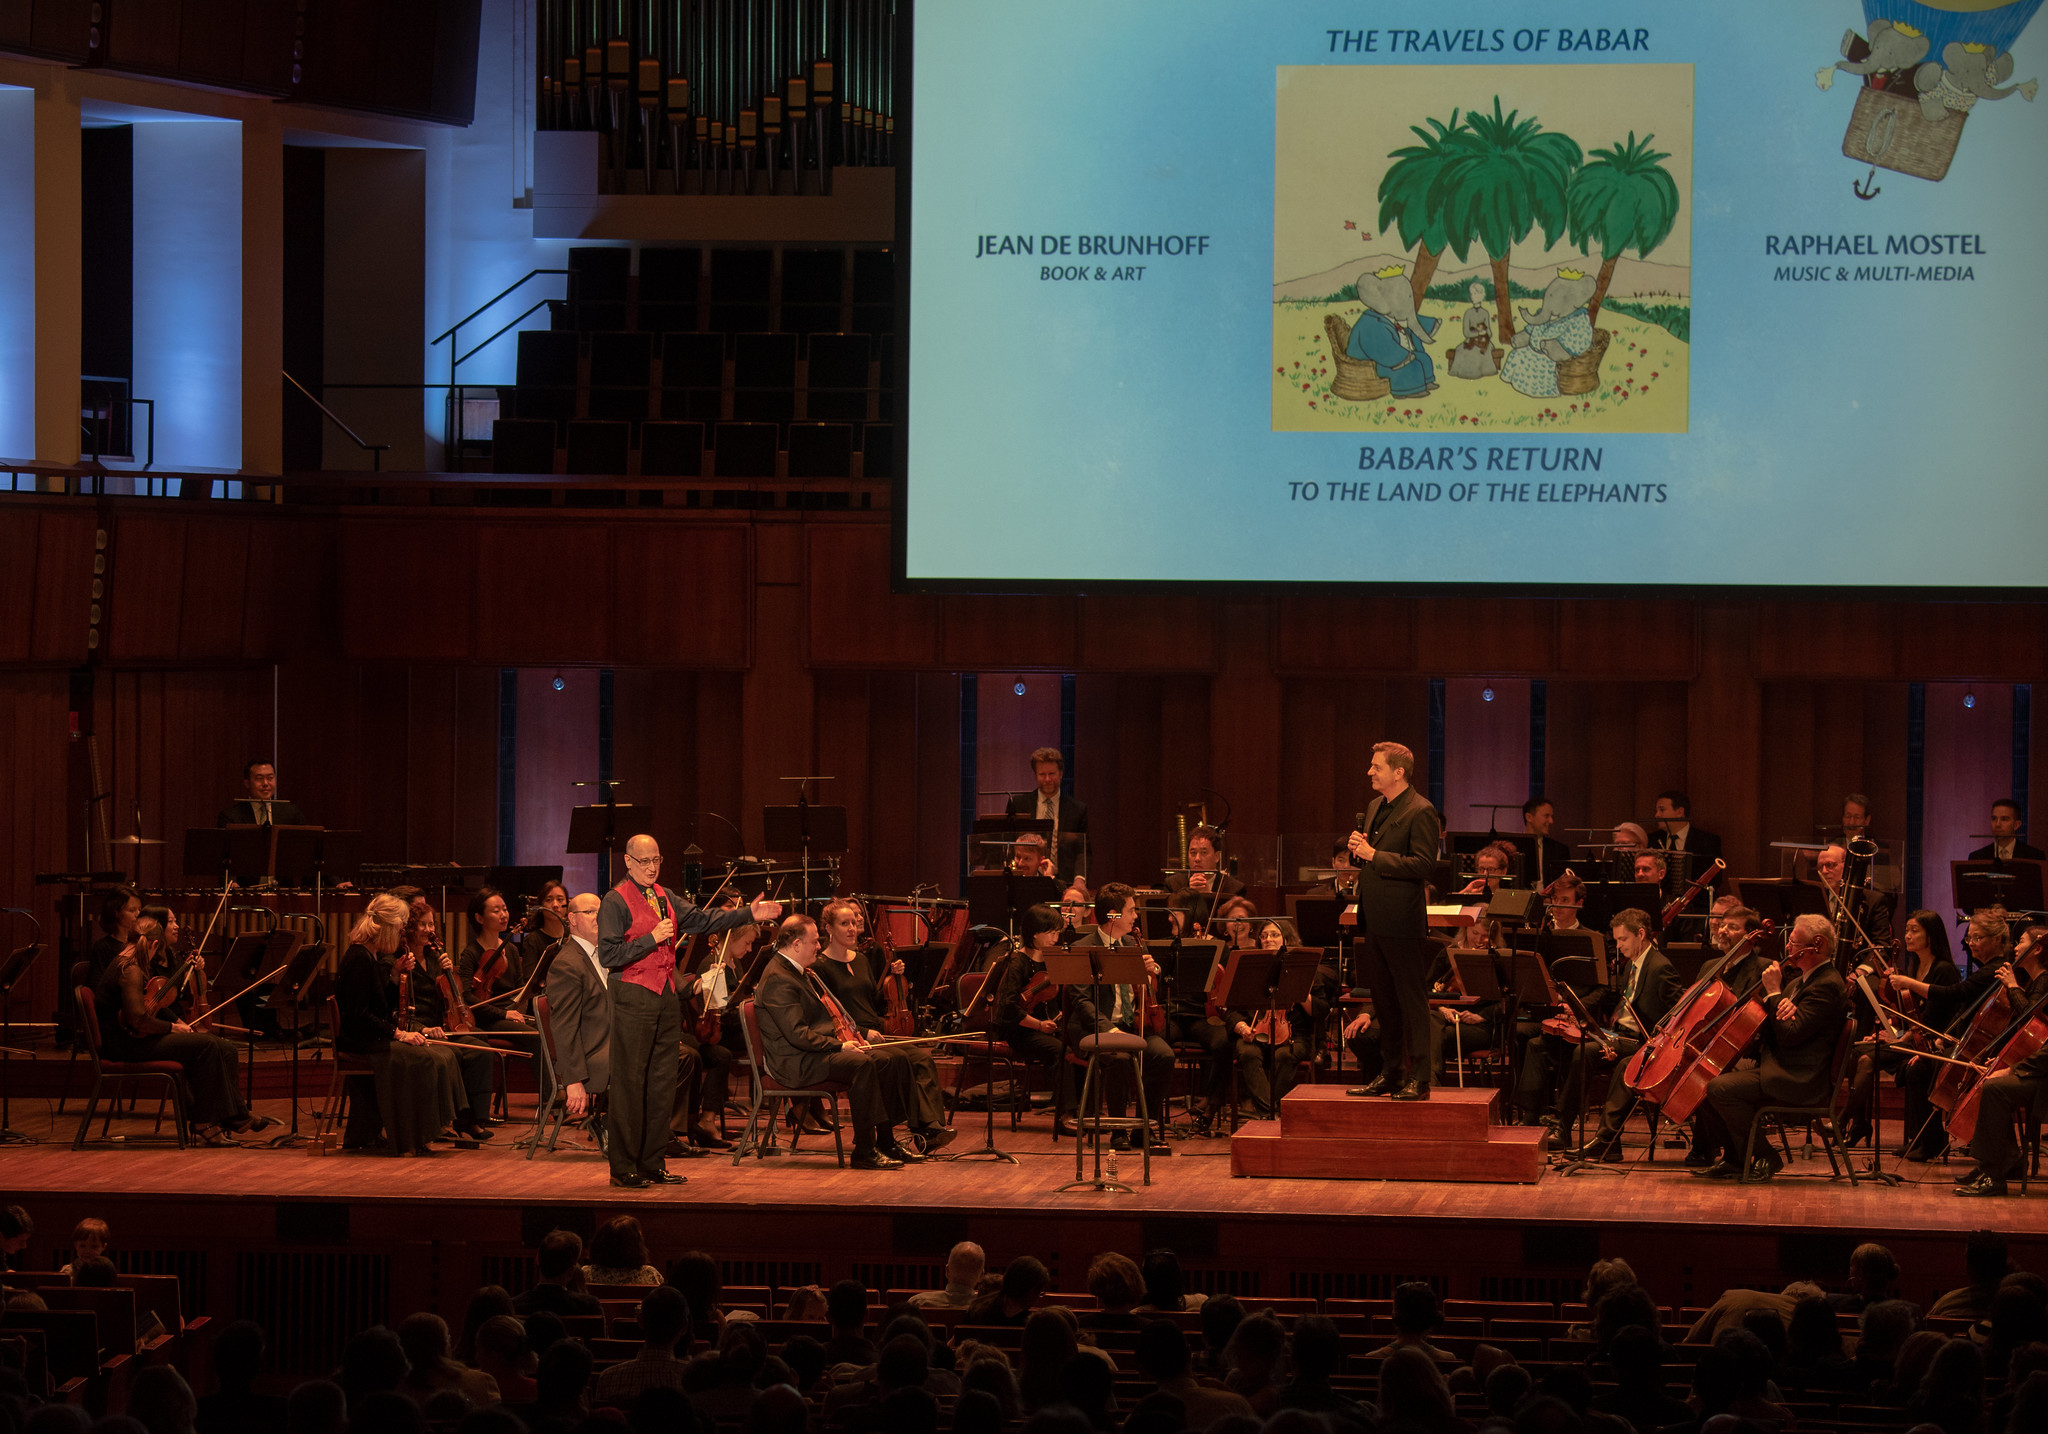 Composer Raphael Mostel and conductor Steven Reineke introducing the first U.S. performance of   Babar's Return to the Land of the Elephants   for orchestra, National Symphony Orchestra, John F Kennedy Center for the Arts, Washington, D.C., April 7, 2019  Photo: Erica Bruce for Mostel.com (full size, hi-res photo available). Multimedia images: original Jean de Brunhoff watercolors, Collection Bibliothèque nationale de France, and Kendra & Allan Daniel Collection. Used with permissions